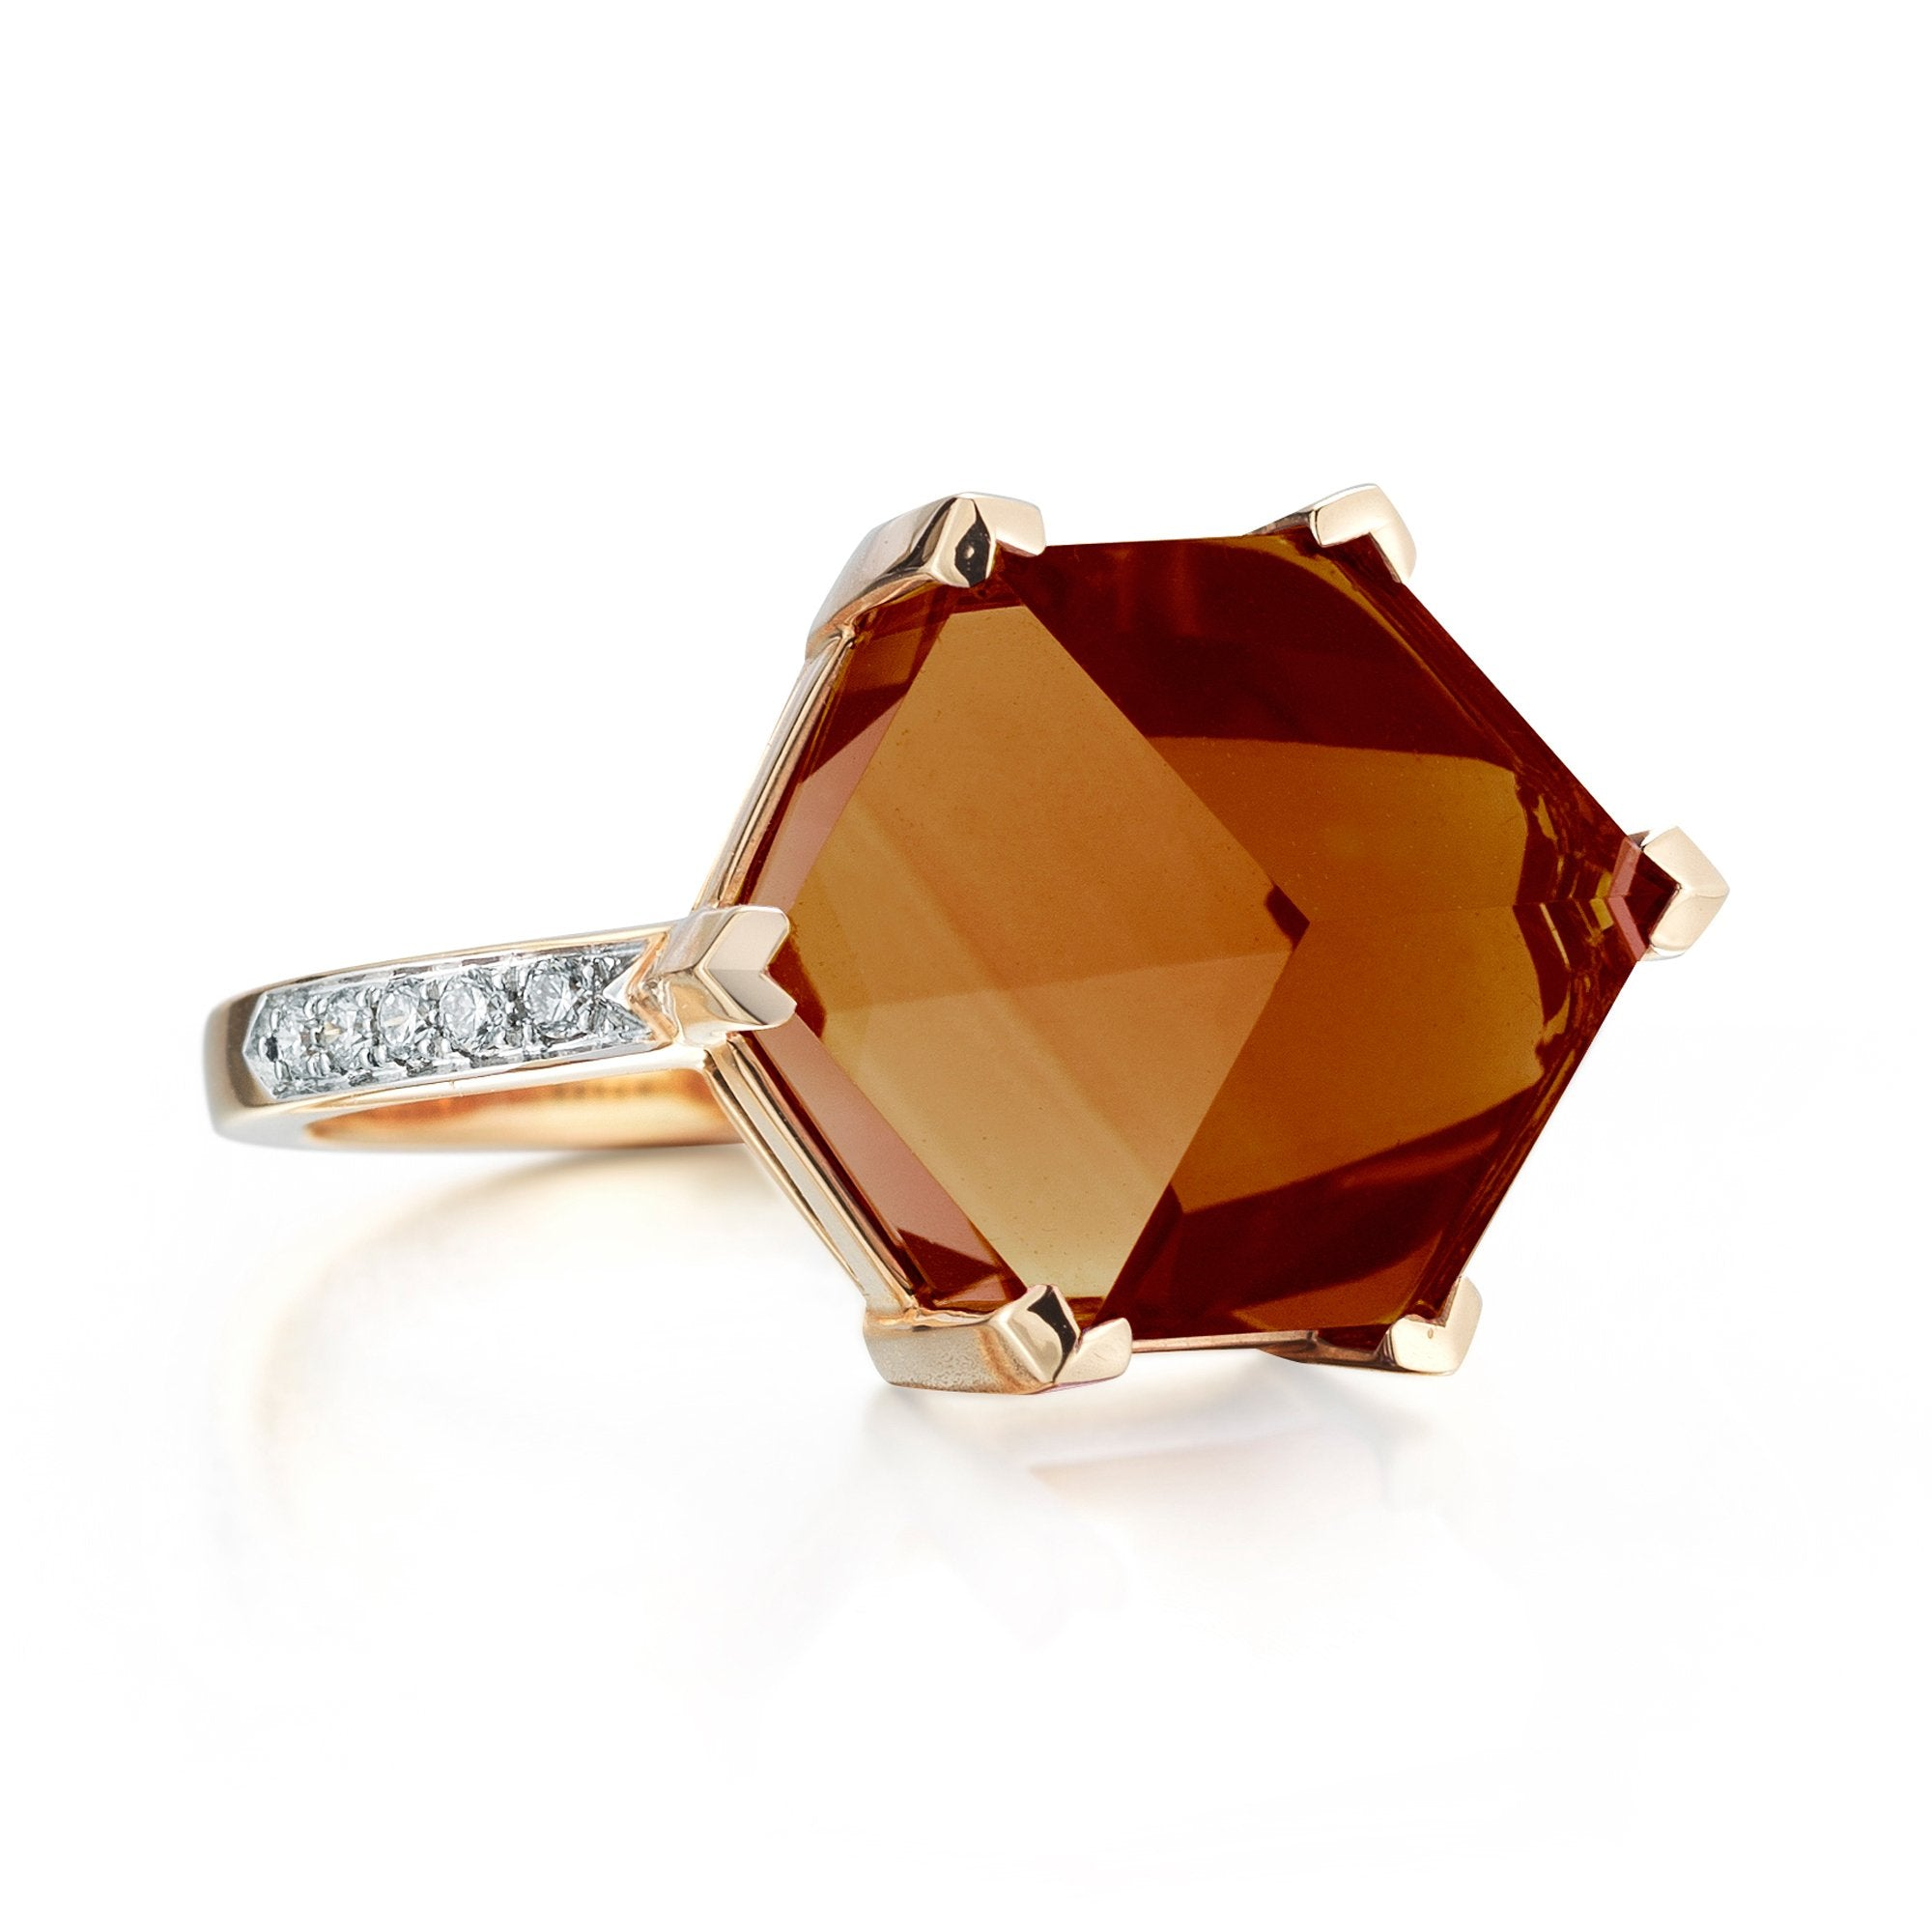 Citrine 'Brillante® Valentina' Ring, Medium - Paolo Costagli - 1